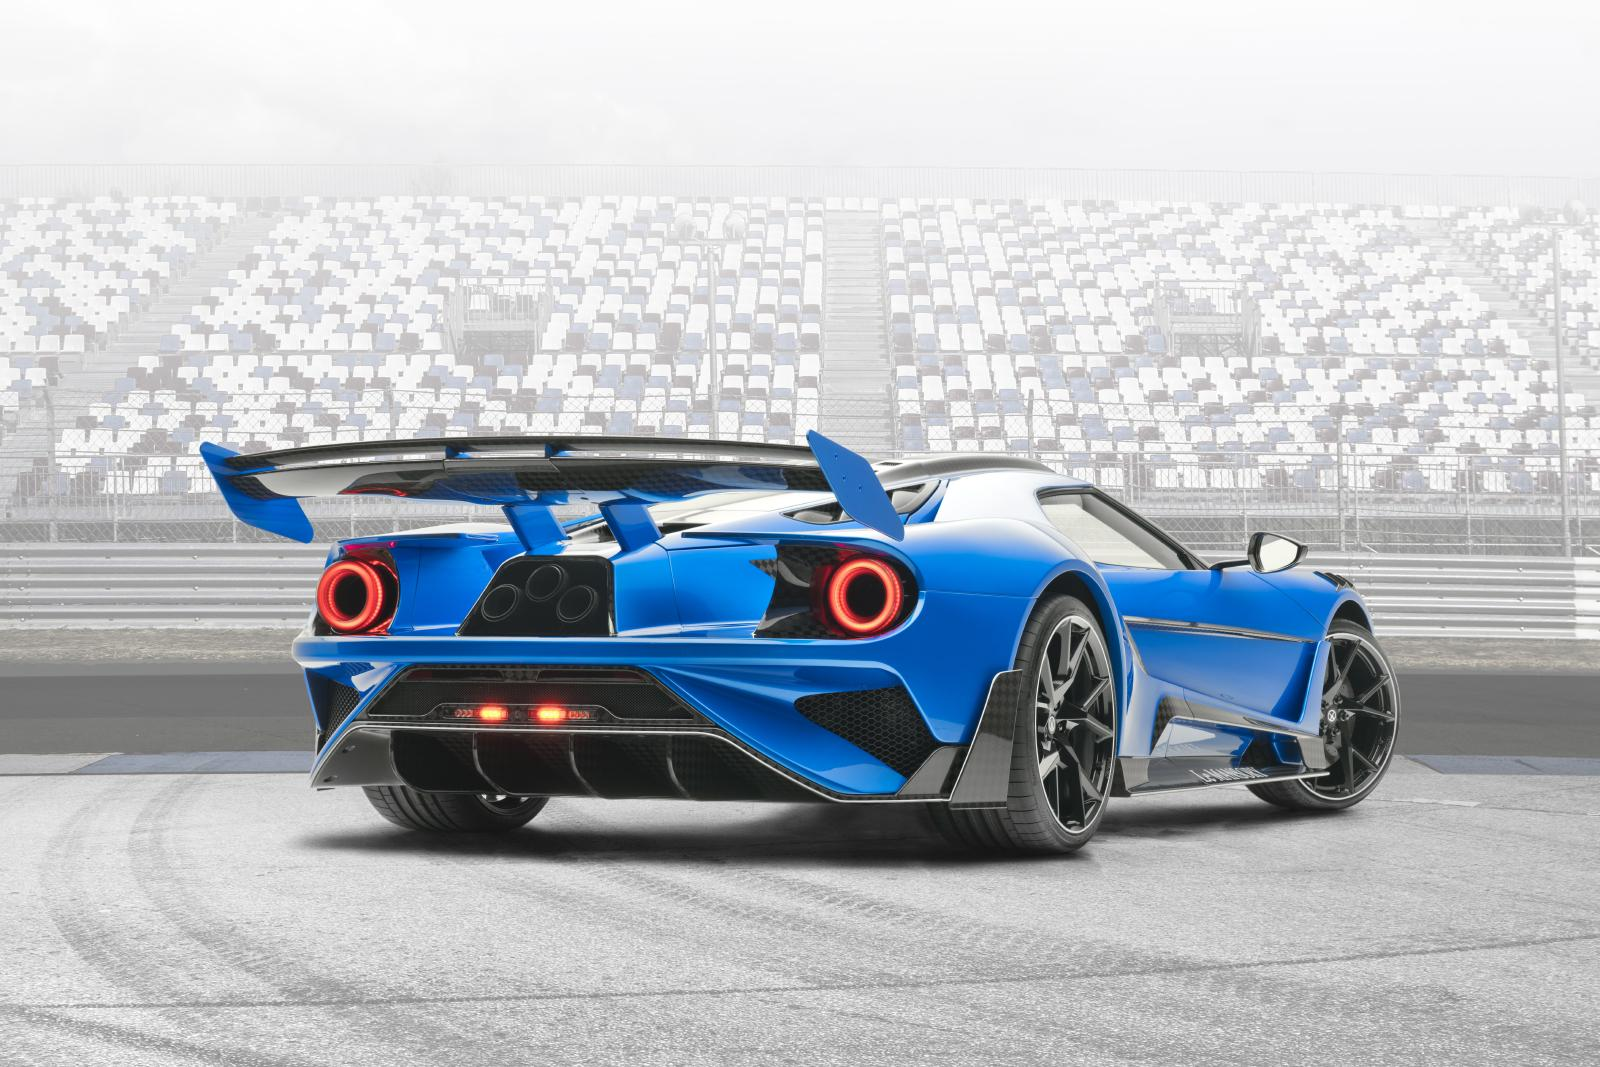 Ford-GT-by-Mansory-Le-Mansory-5